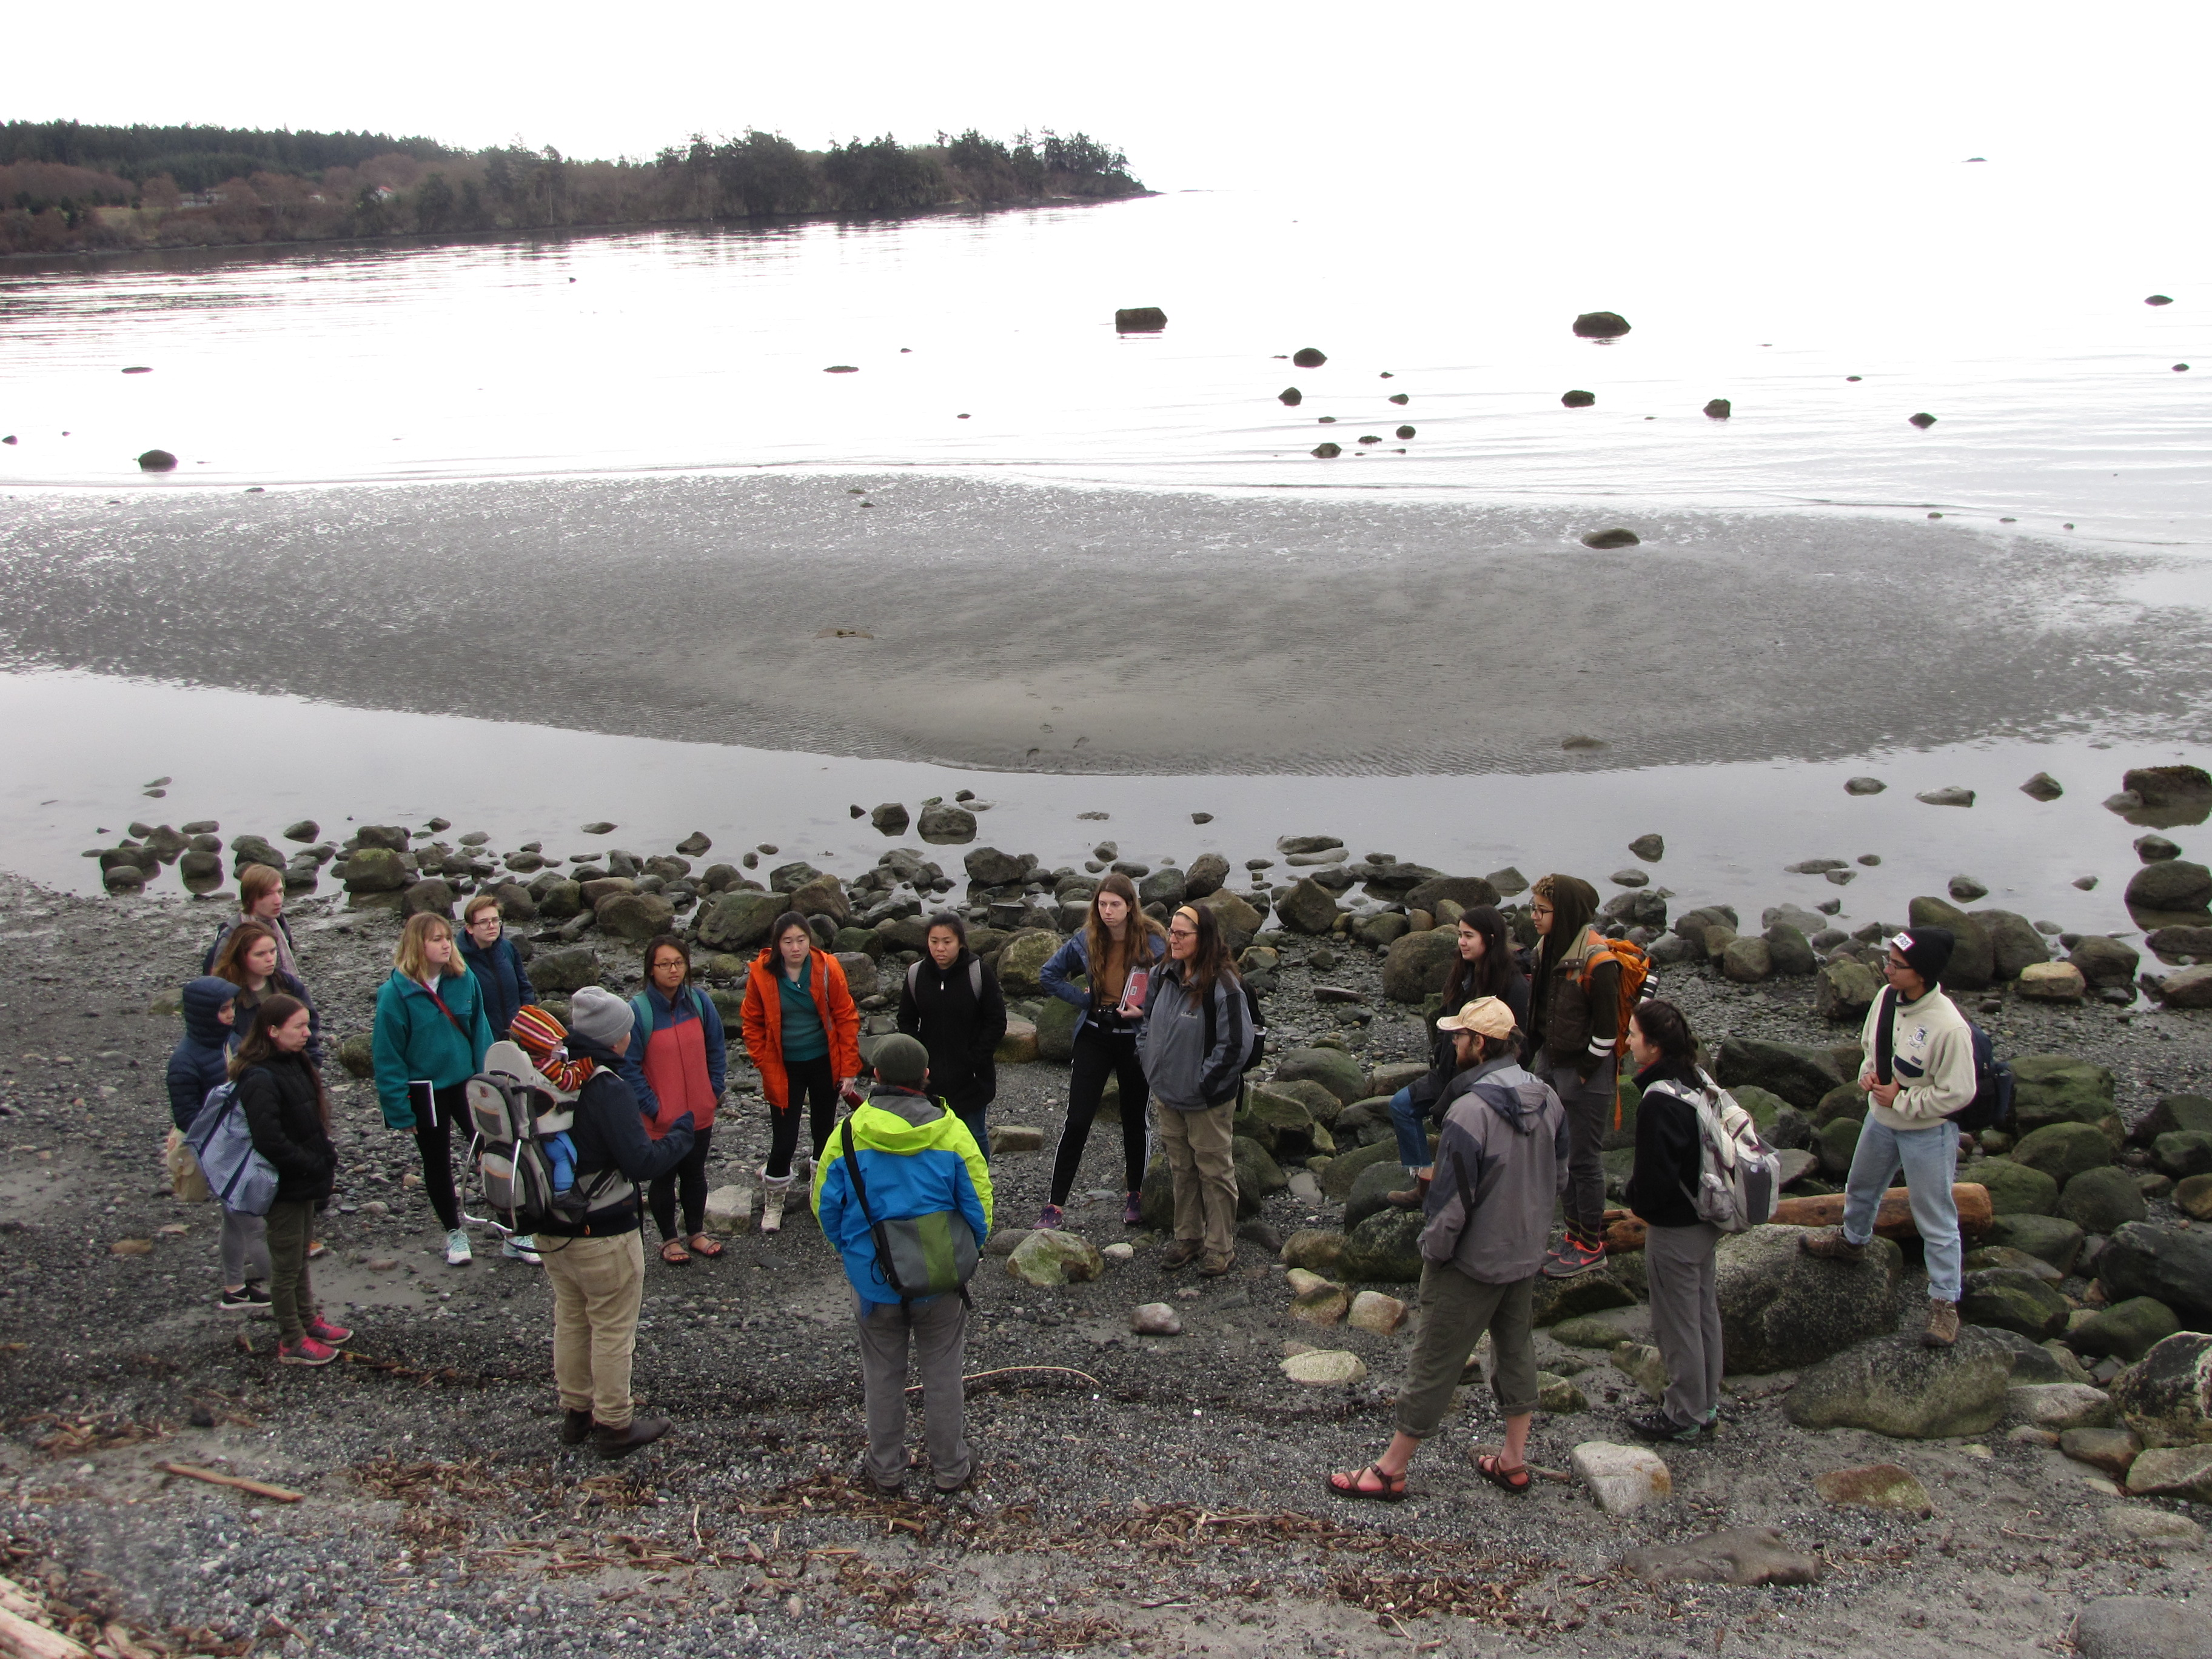 Students gathered on a sandy beach with calm water behind them.